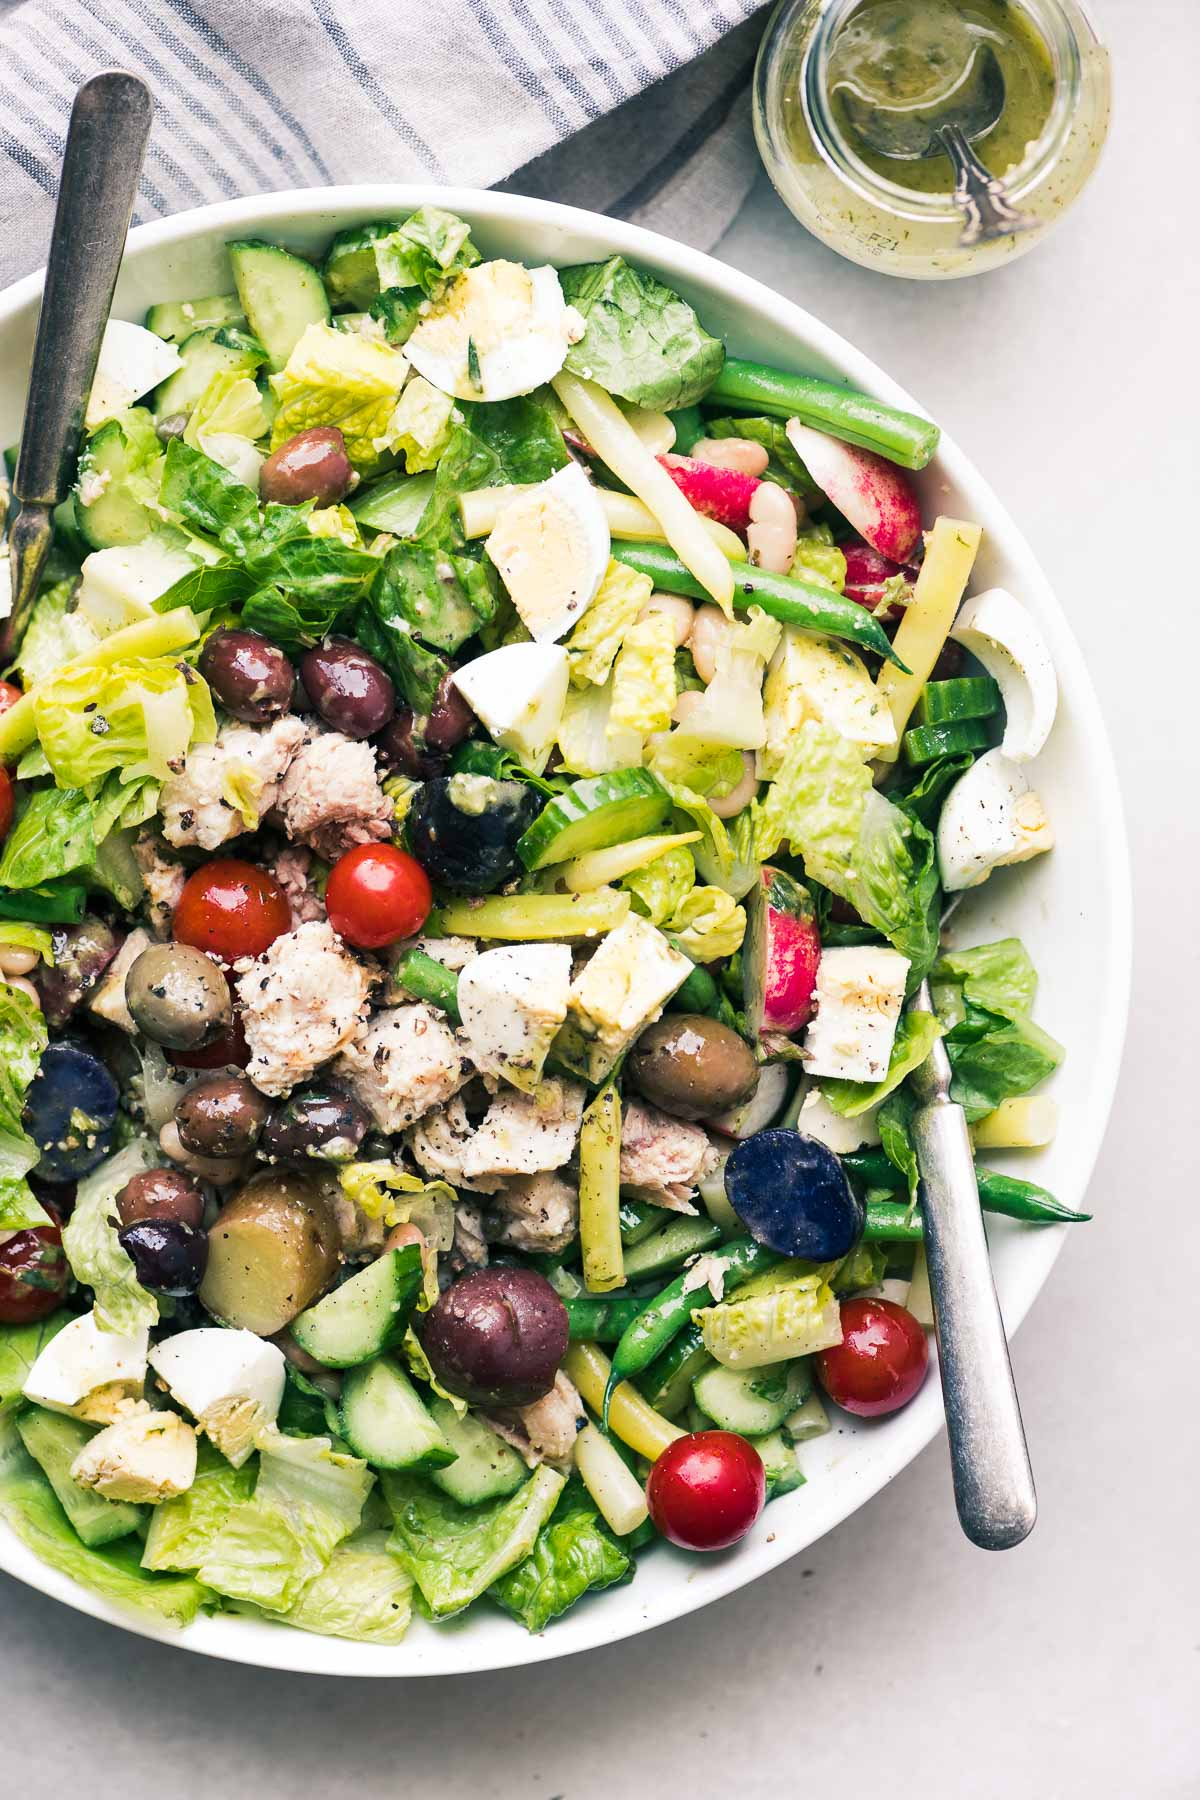 Tossed Nicoise Salad in a bowl